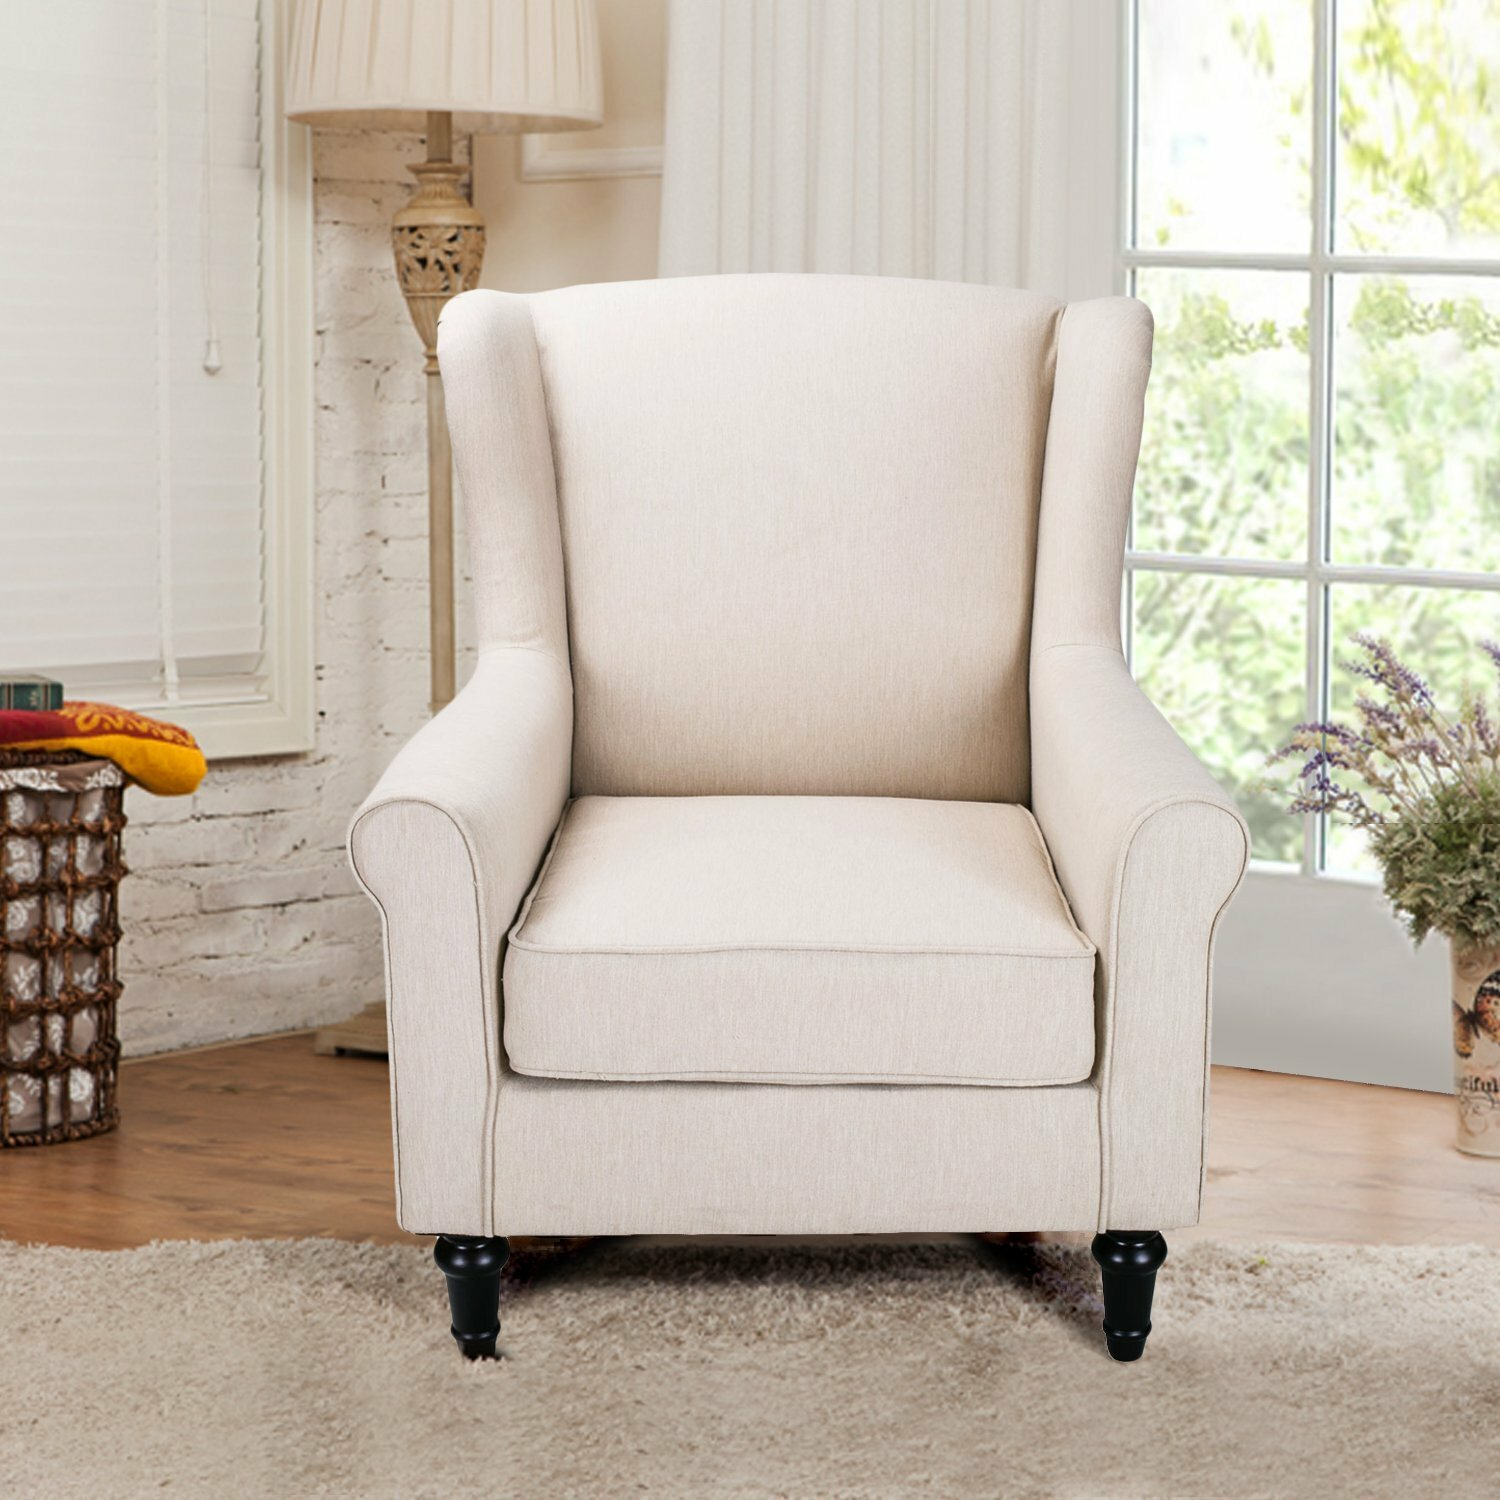 Adecotrading Living Room Single Lounge Chair Wayfair